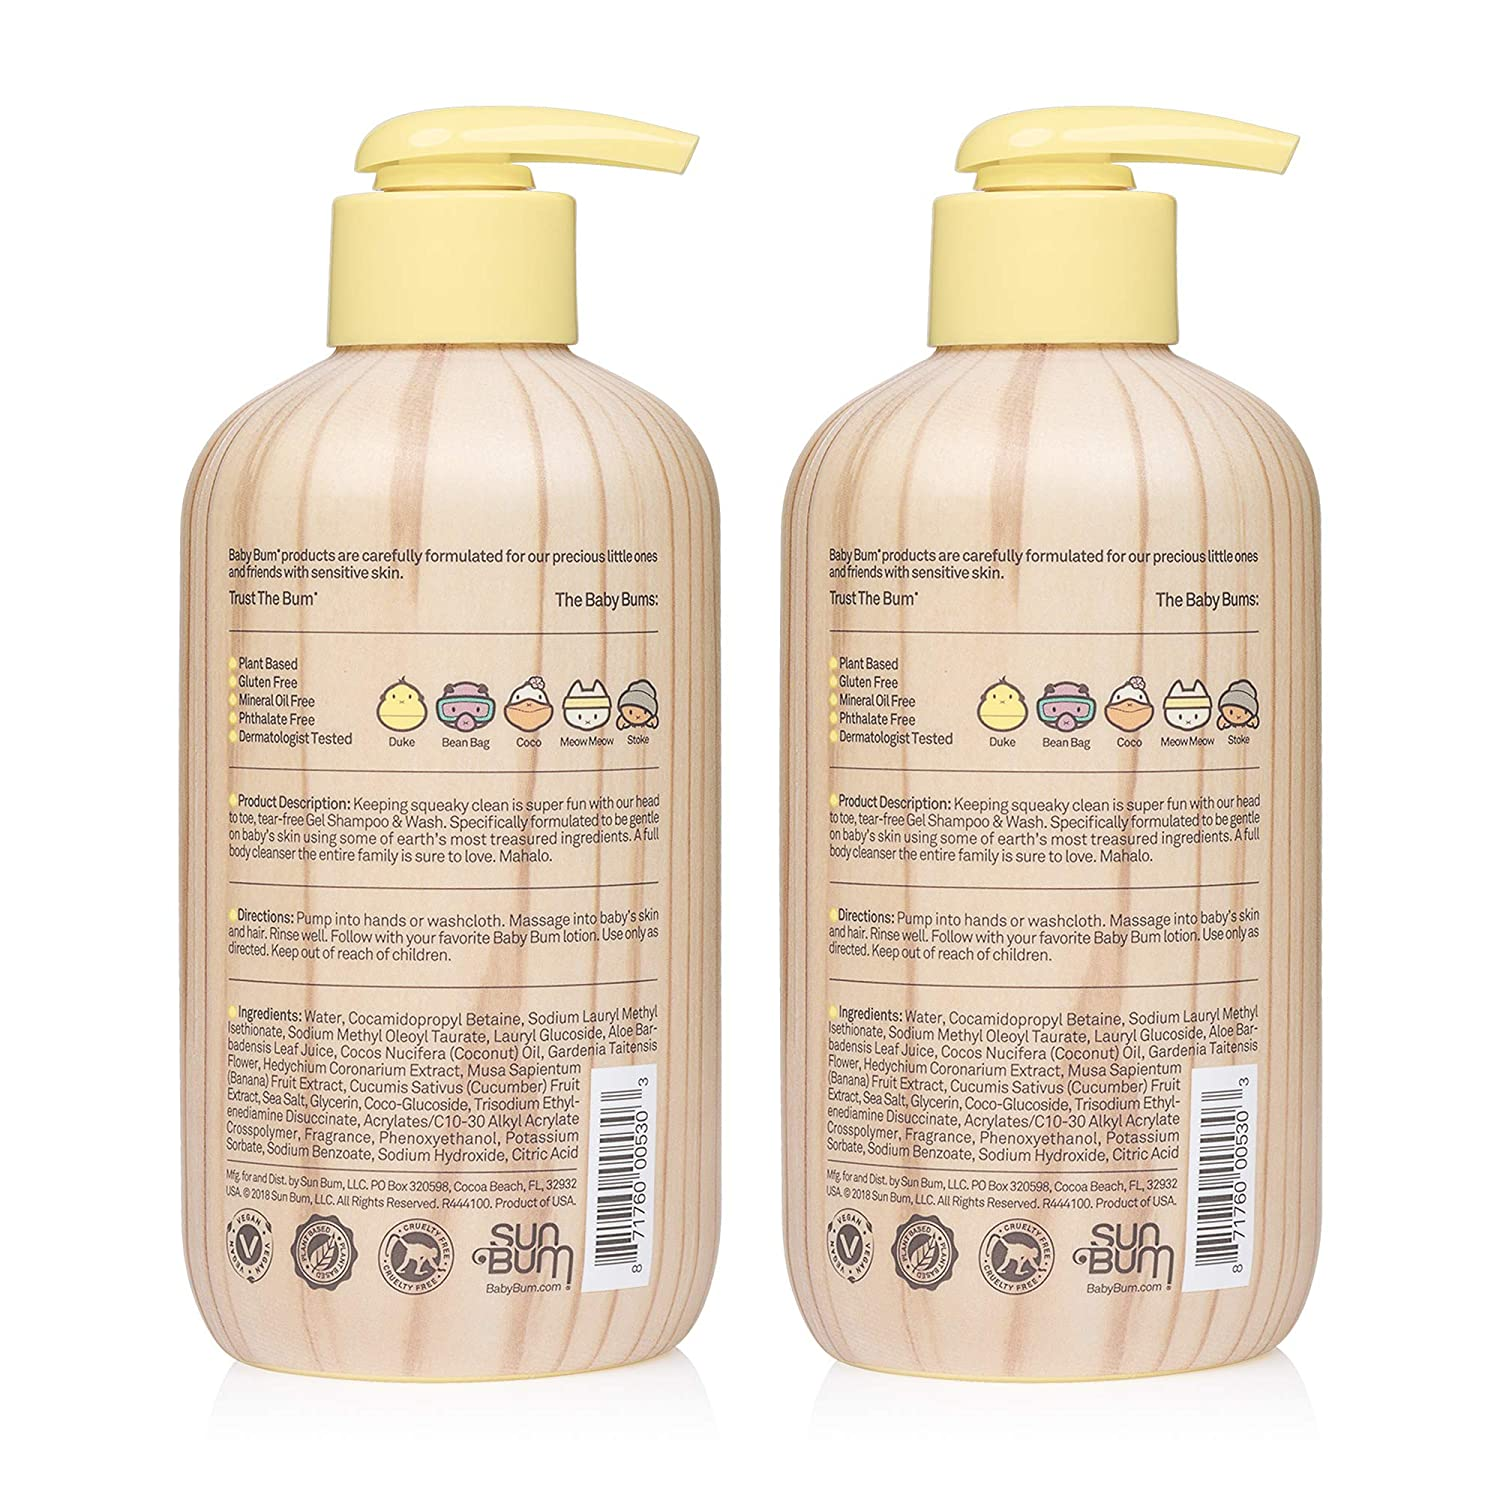 fd6e93d30bc Amazon.com : Baby Bum Shampoo & Body Wash Gel - Natural Fragrance - Tear  Free - Soap for Sensitive Skin with Coconut Oil and Aloe - 12 FL OZ : Baby